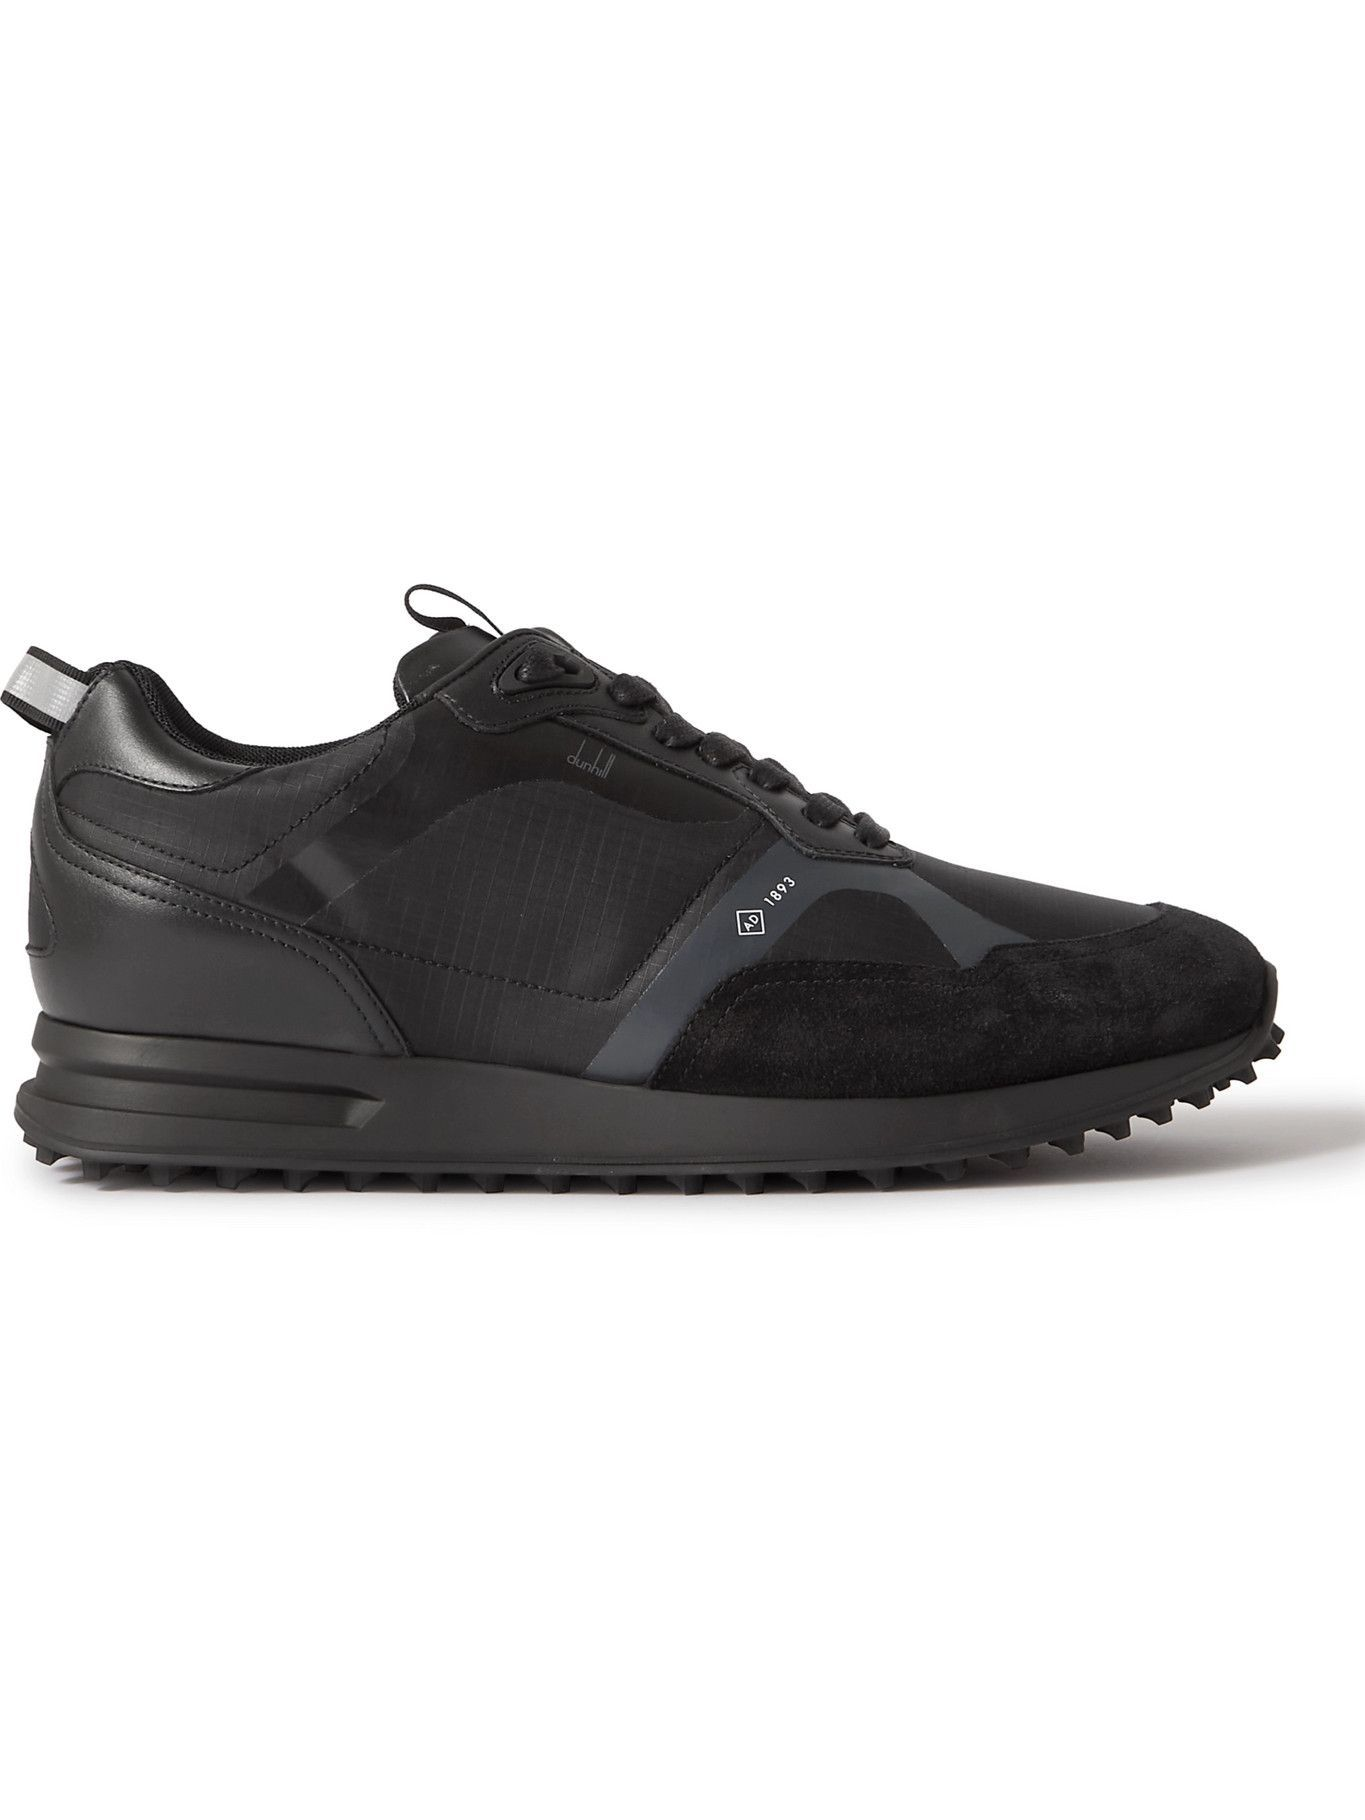 DUNHILL - Radial 2.0 Leather and Suede-Trimmed Ripstop Sneakers - Black